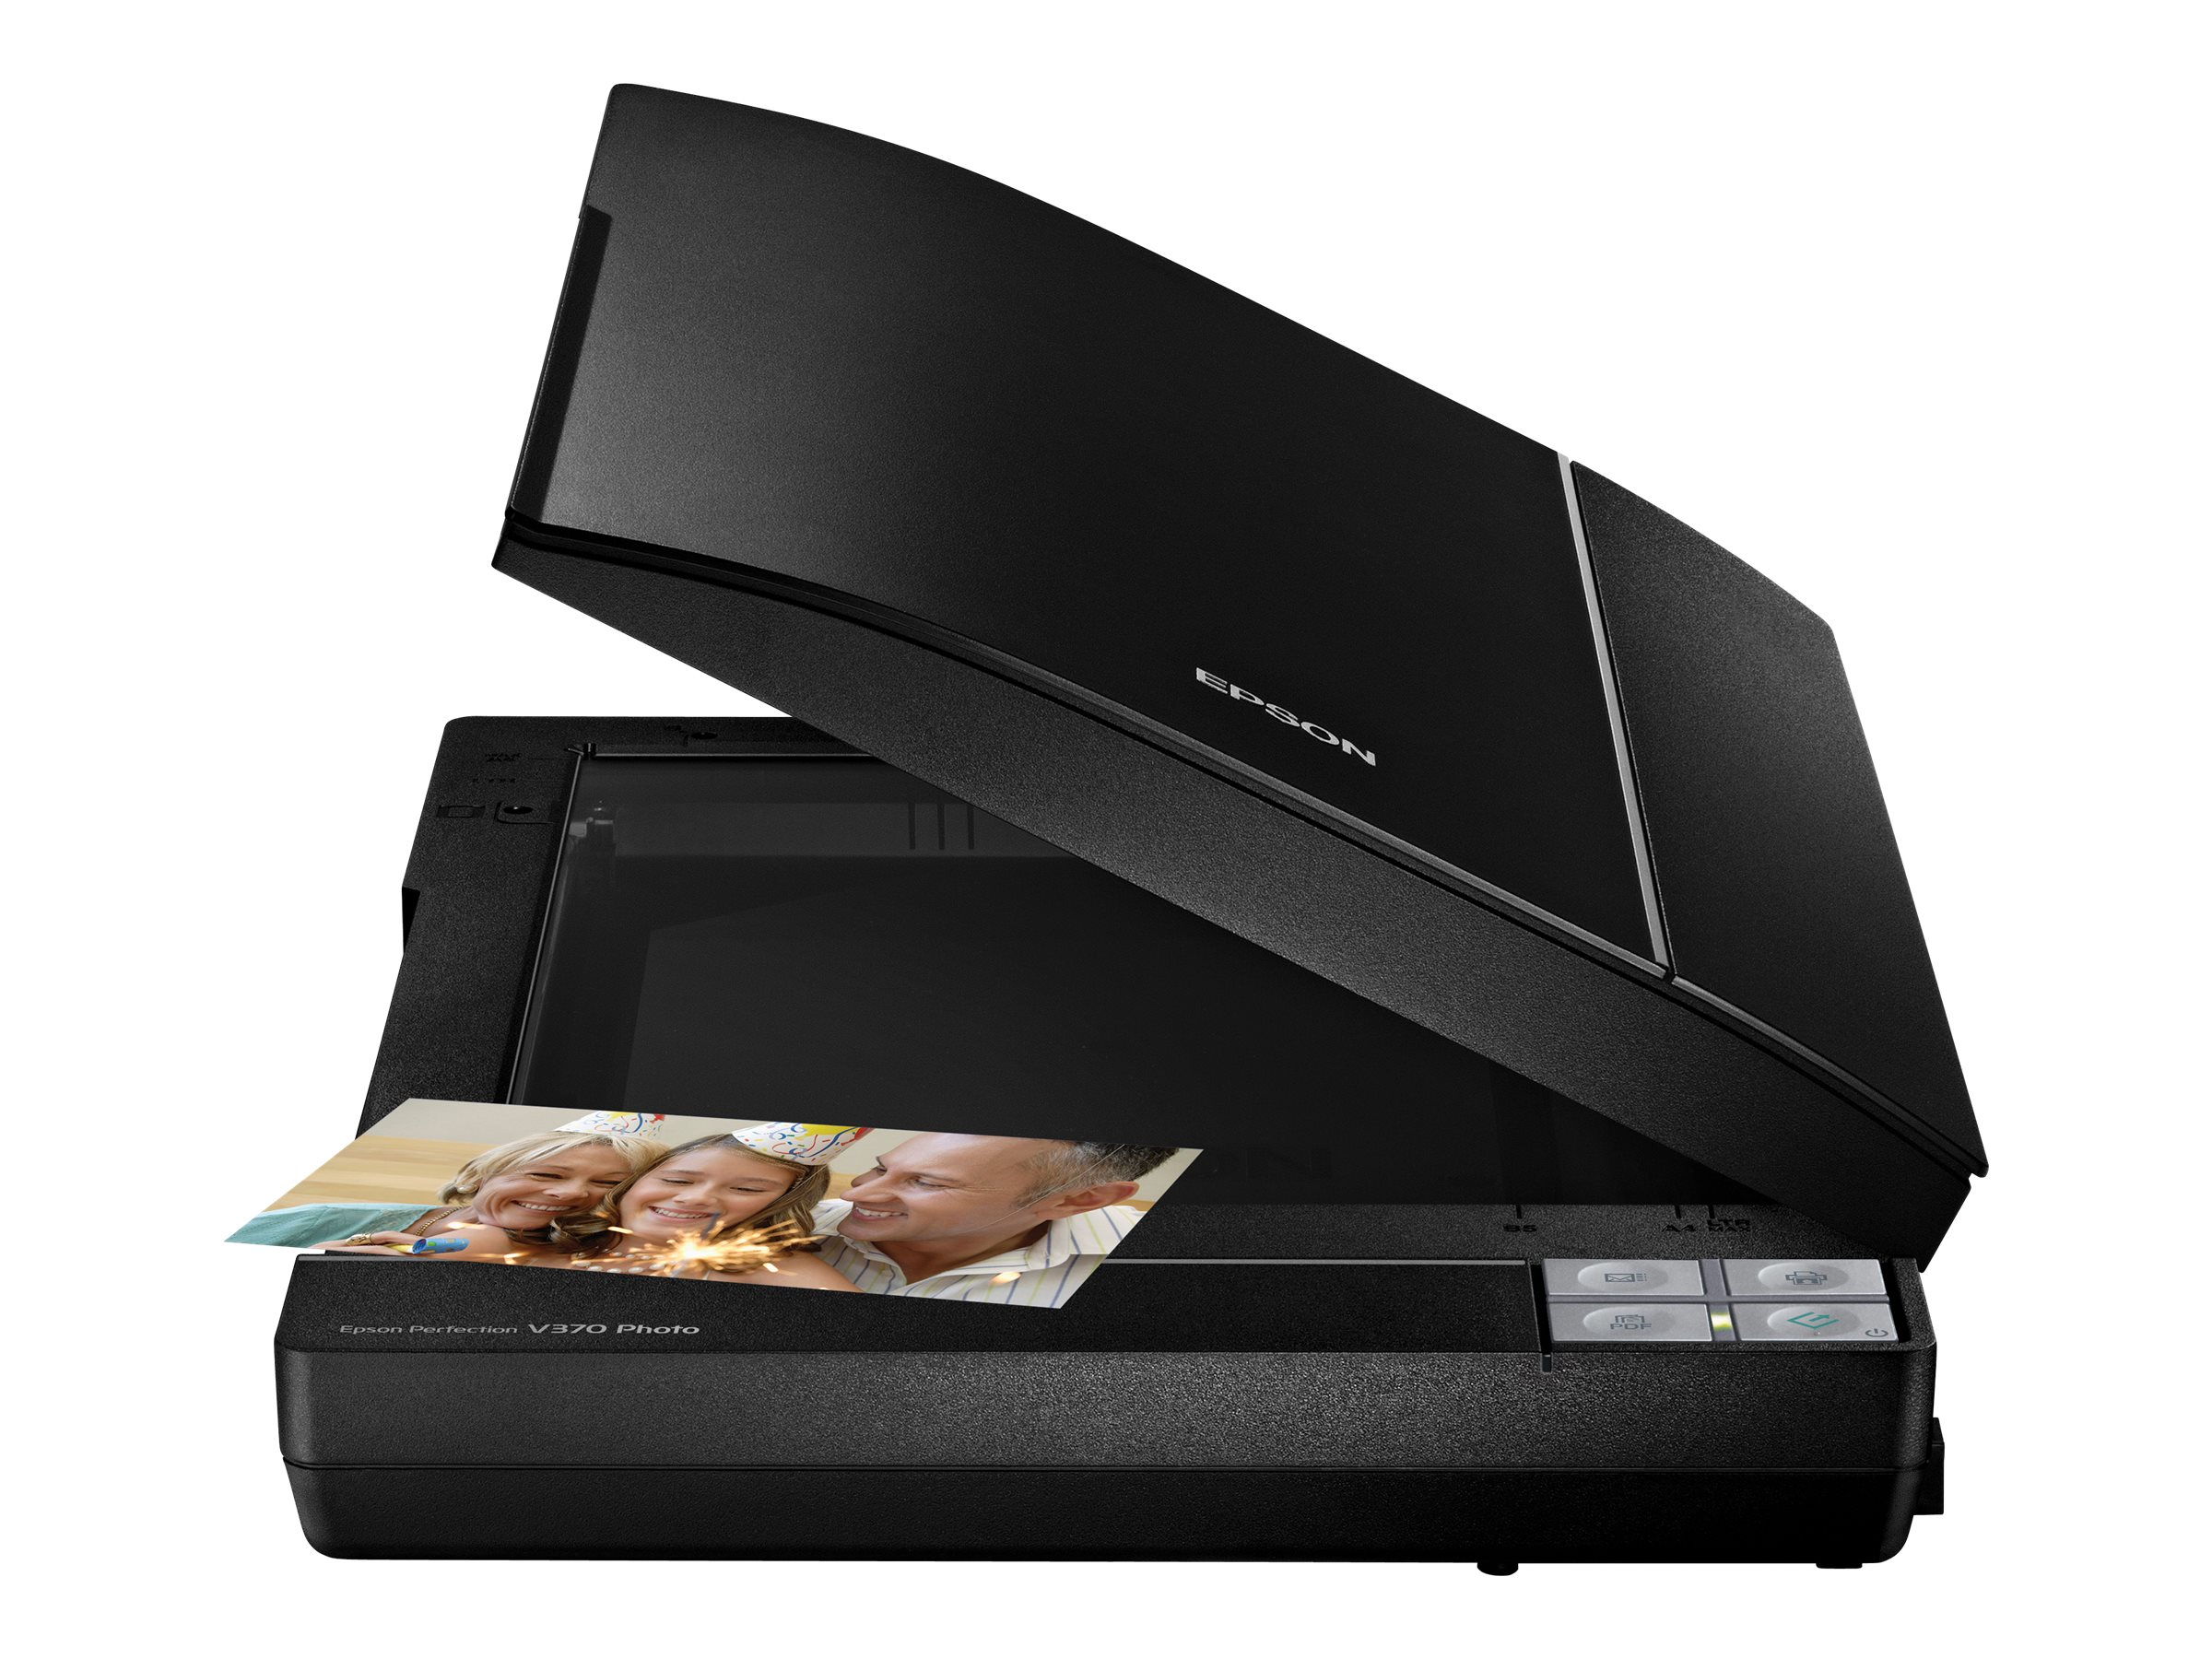 Epson Perfection V370 Scanner USB 4800dpi - $129.99 less instant rebate of $7.00, B11B207221